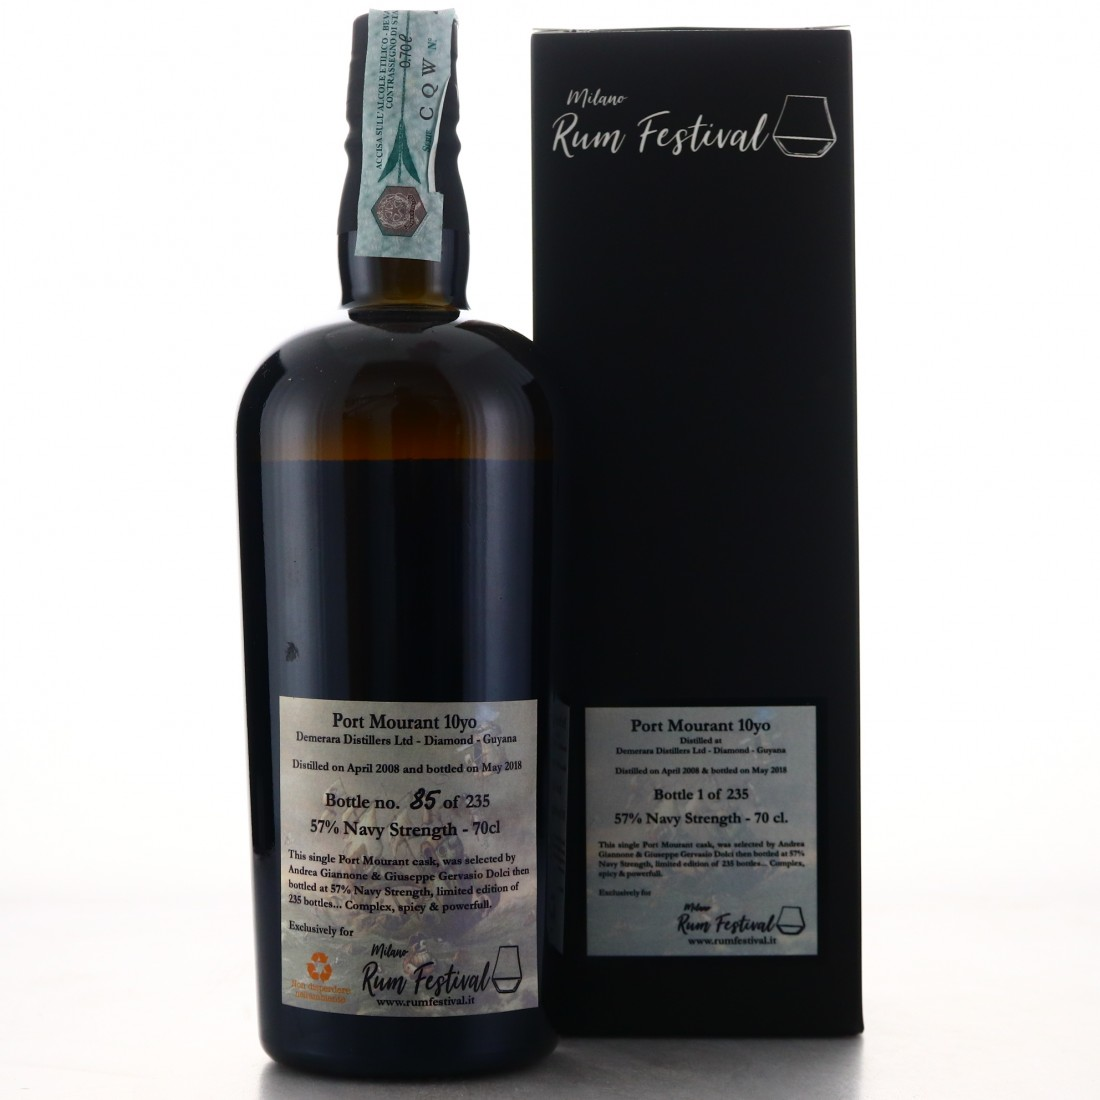 Port Mourant 2008 Milan Rum Festival 10 Year Old